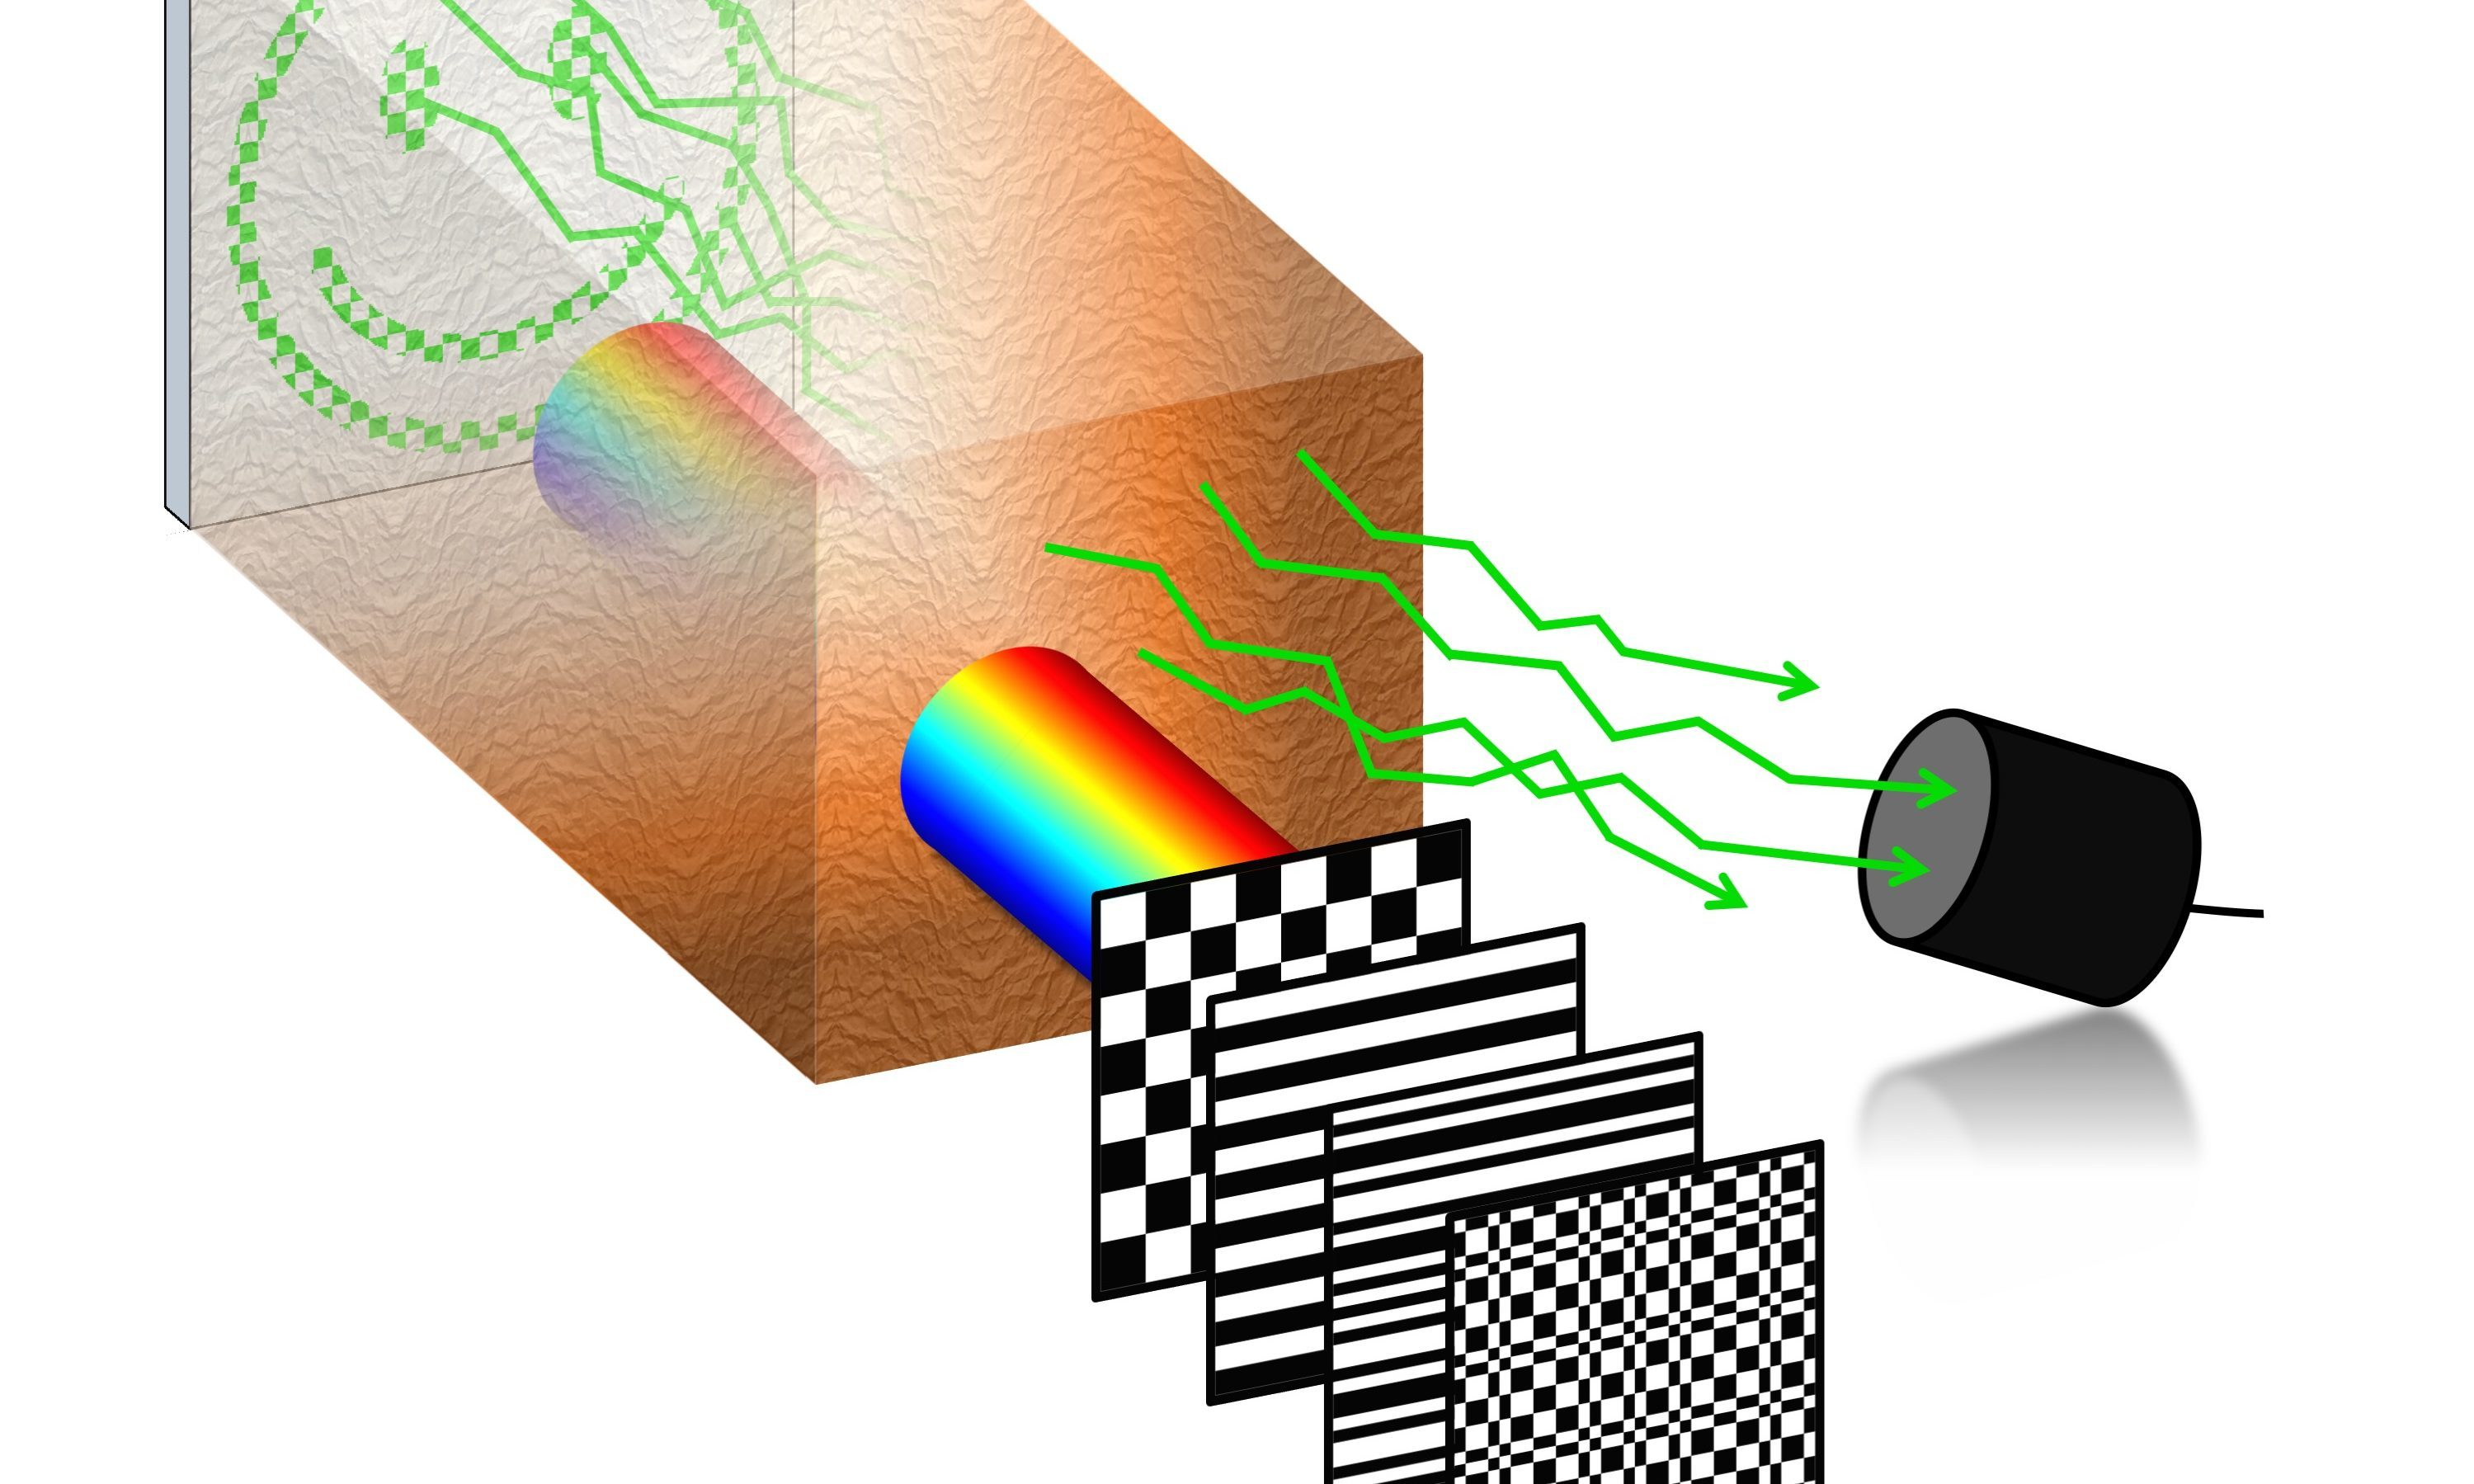 Laser light patterns are sequentially focused in time onto a region of interest inside biological tissue. Fluorescence emitted by the sample under each illumination pattern is collected with a single-pixel detector after passing back through the tissue. By adding up the projected patterns weighted by the intensities recorded, an image of the sample can be reconstructed.